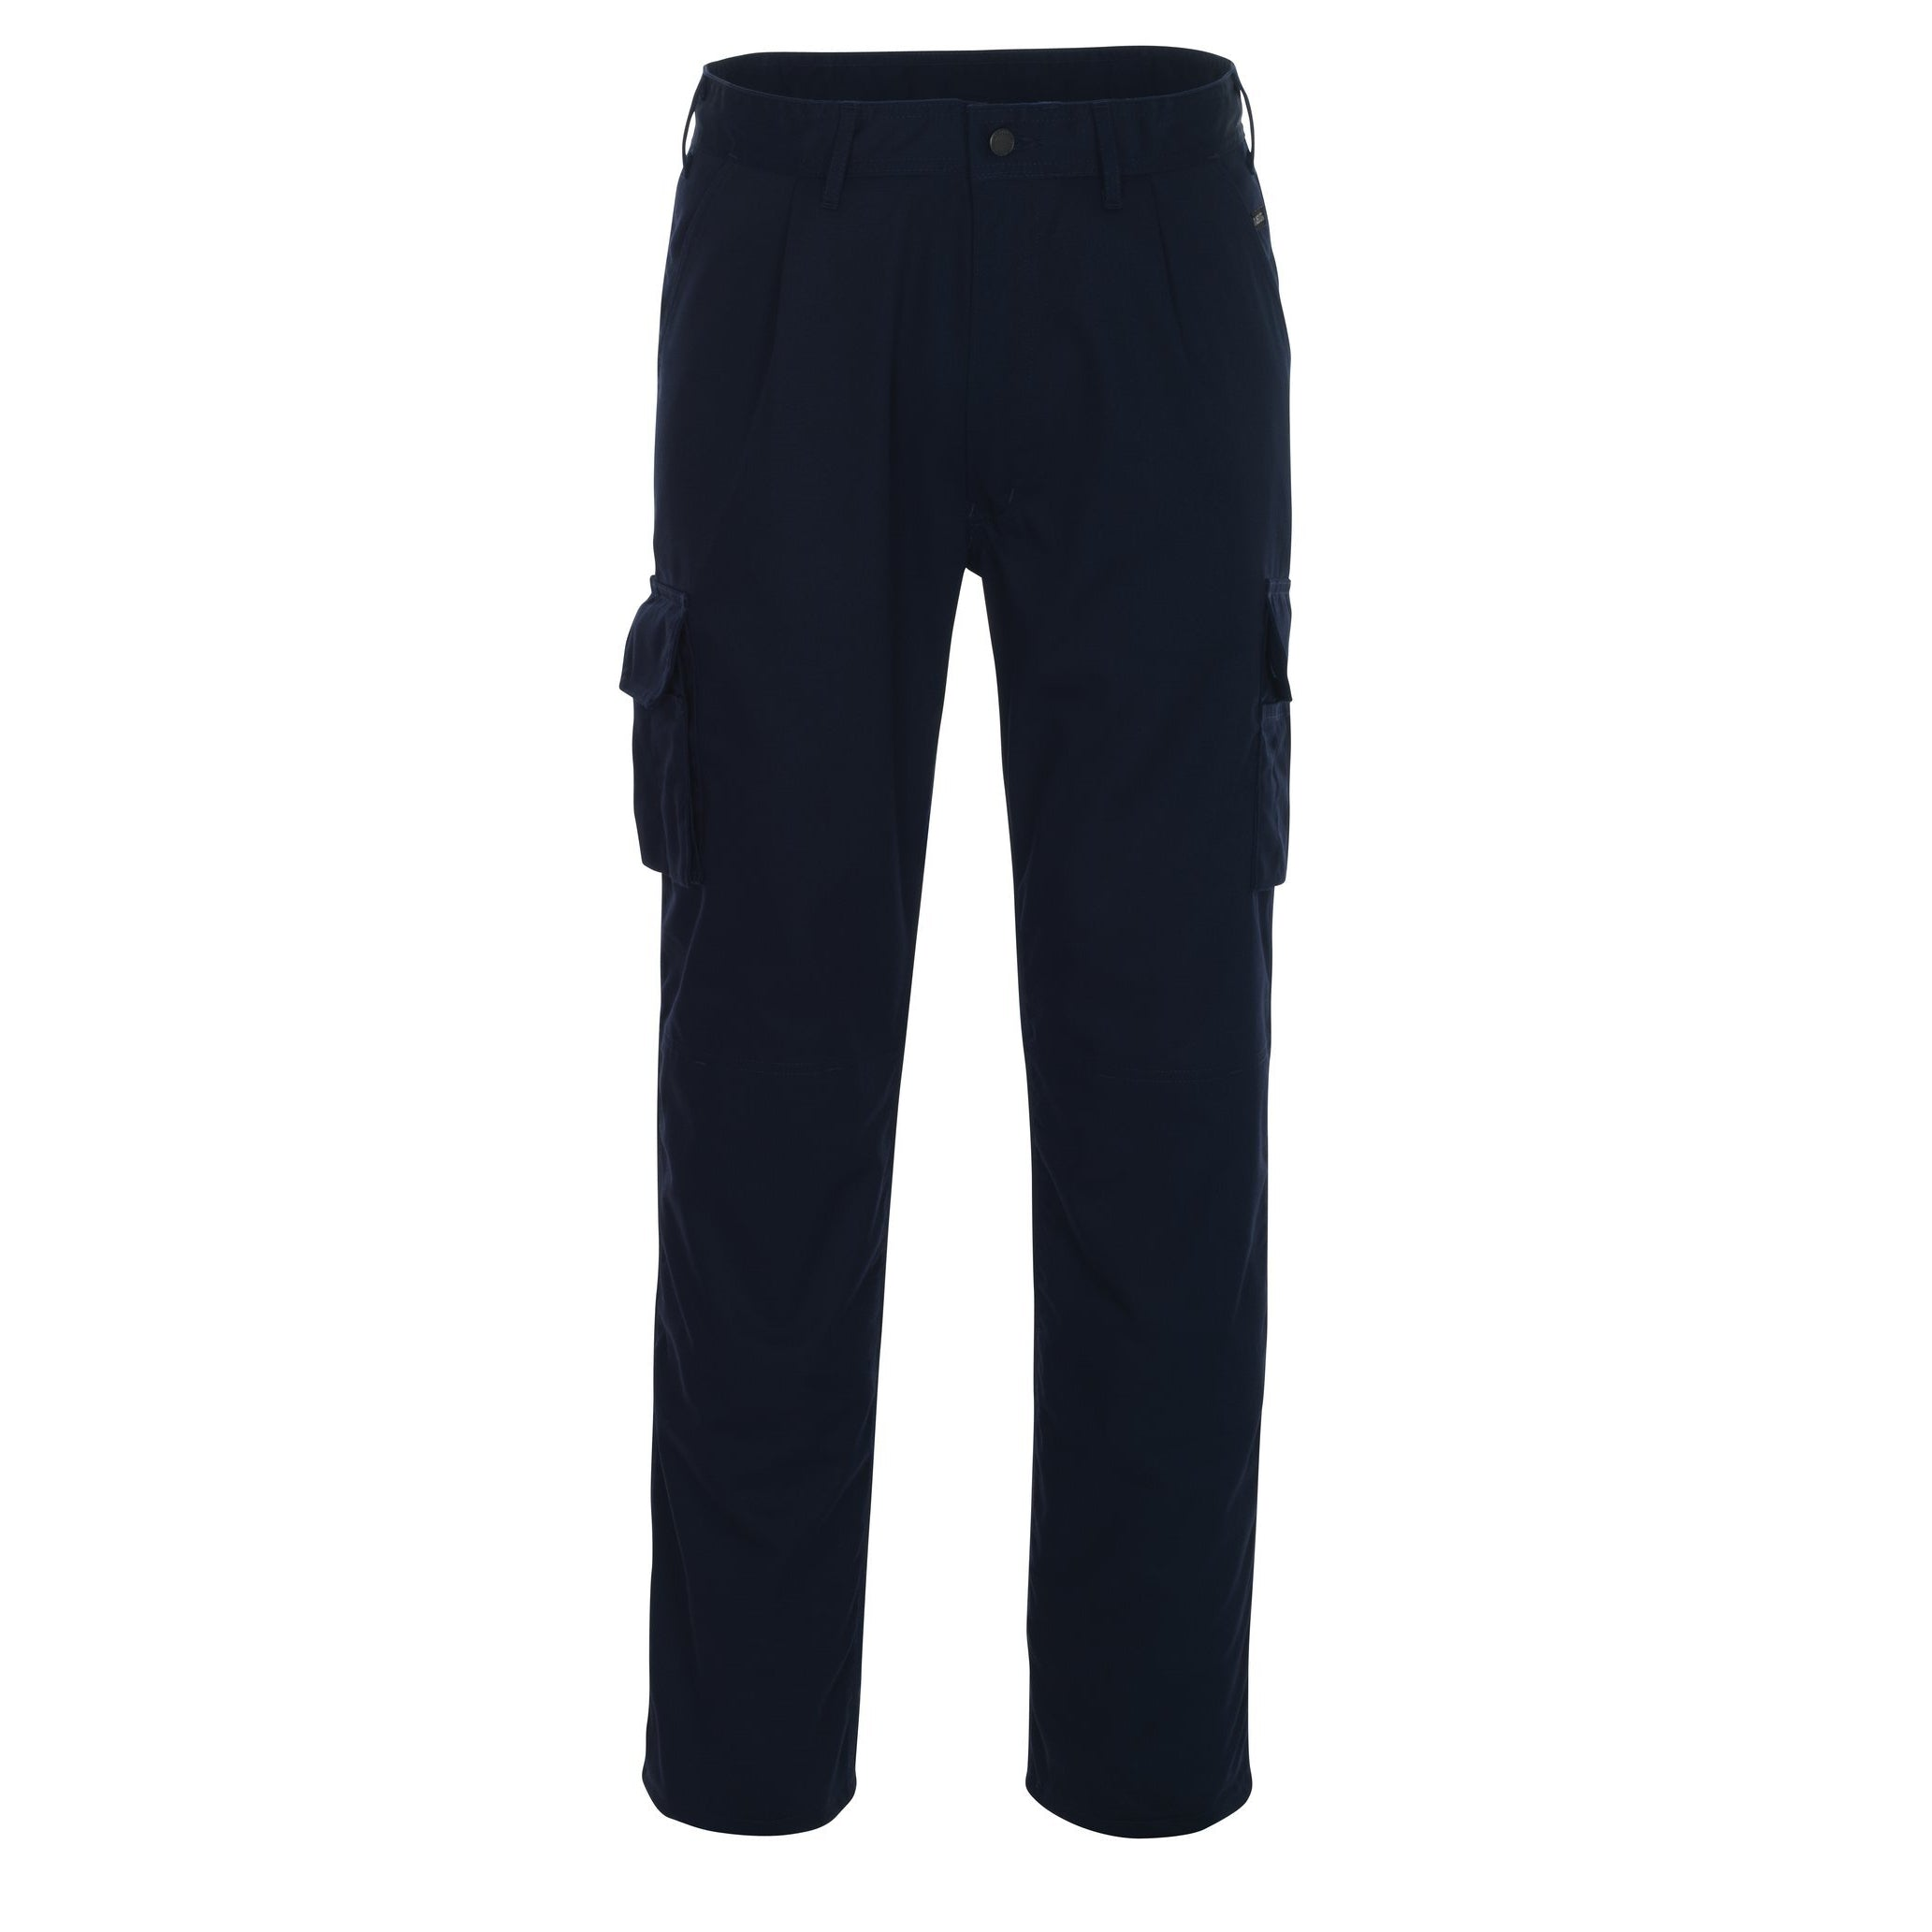 Mascot Pasadena Originals Trousers With Kneepad Pockets